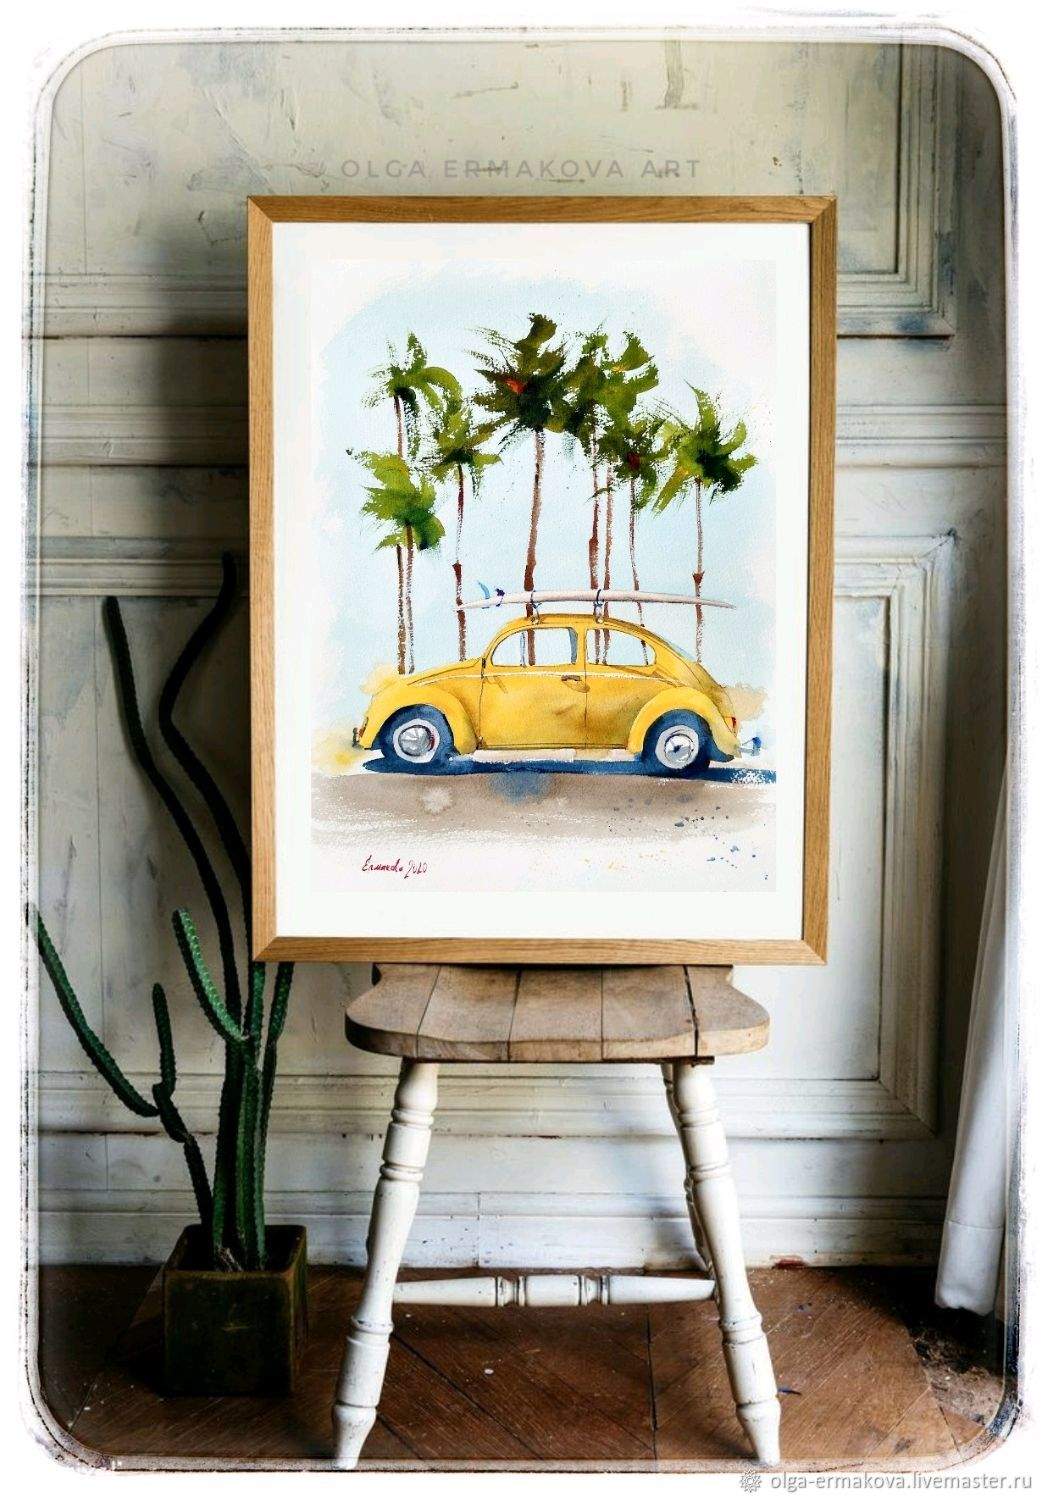 Retro car yellow and palm trees in a watercolor painting in modern, Pictures, Moscow,  Фото №1